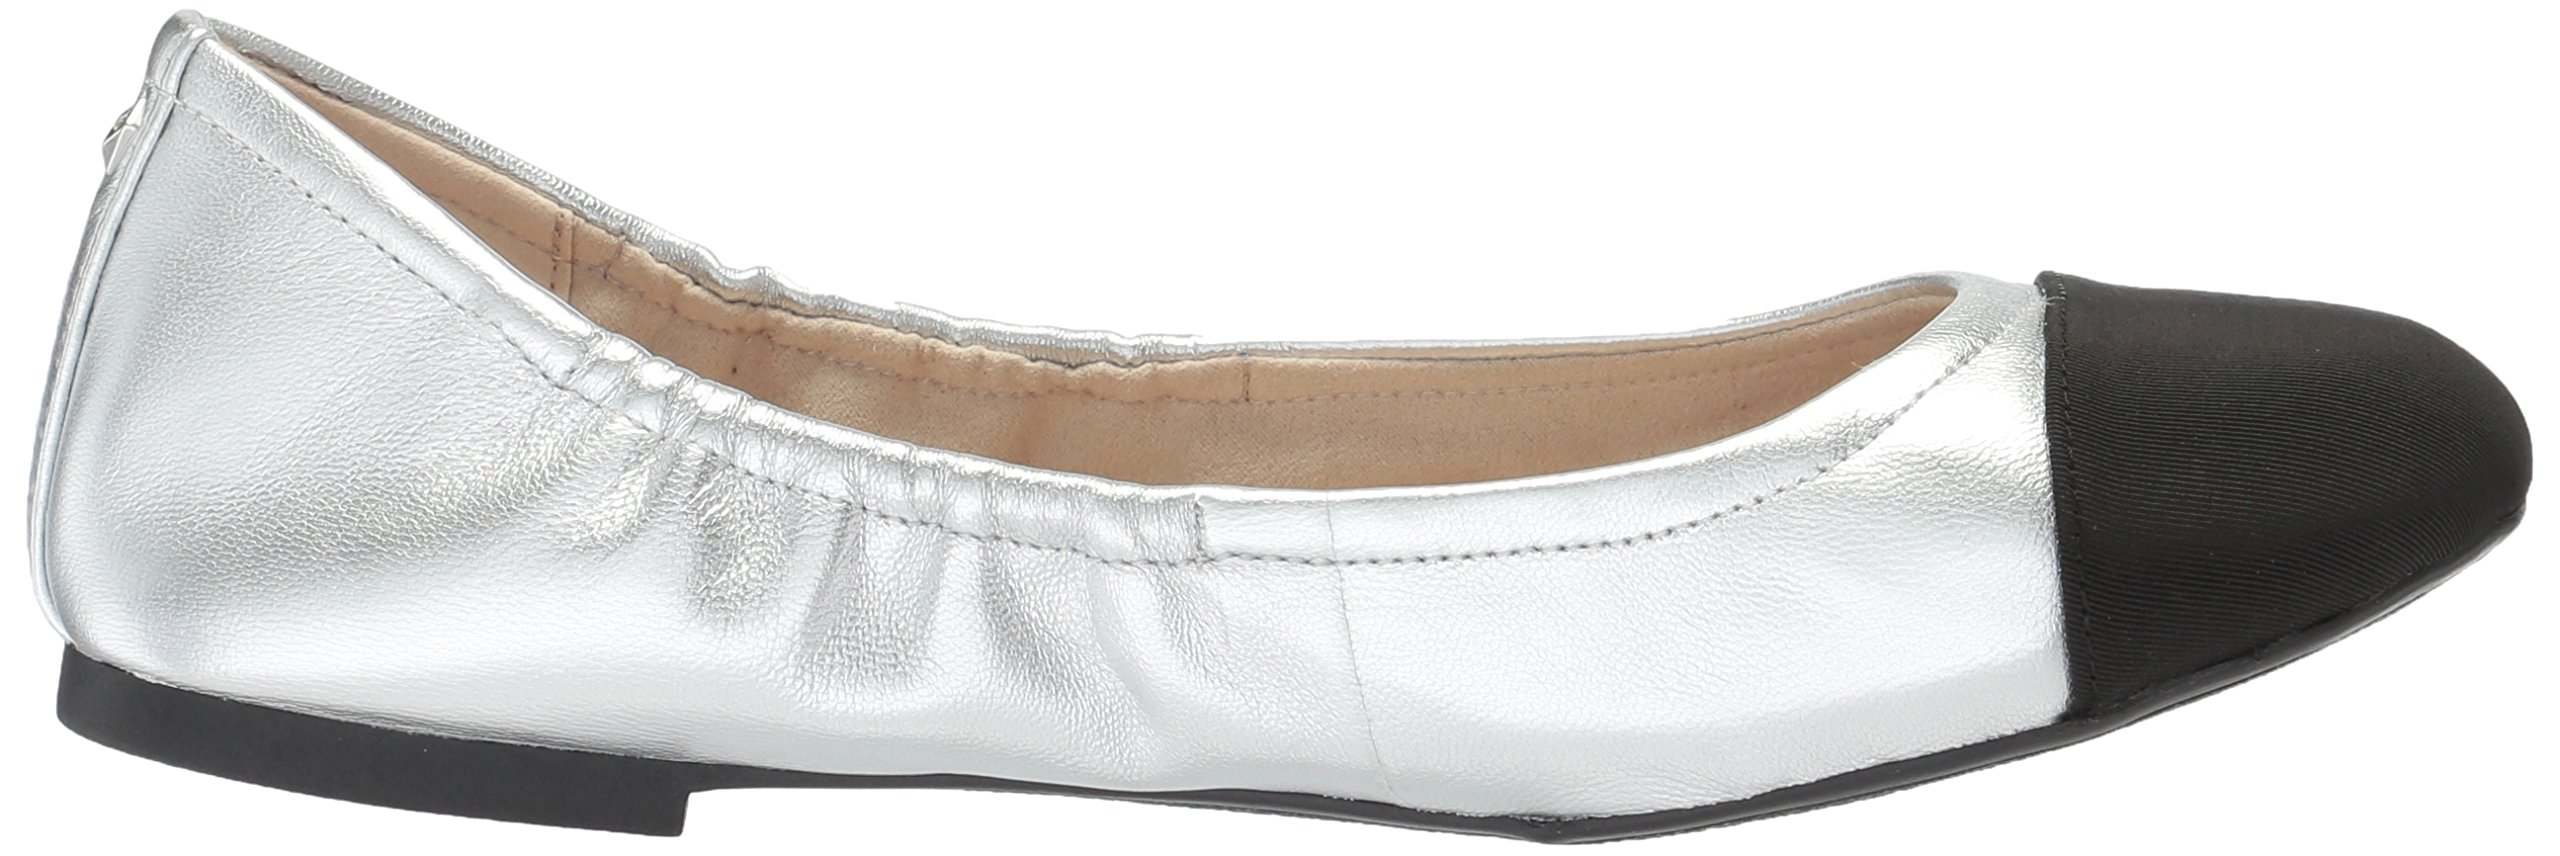 Sam Edelman Women's fraley Ballet Flat, Soft Silver/Black, 7 Medium US by Sam Edelman (Image #7)